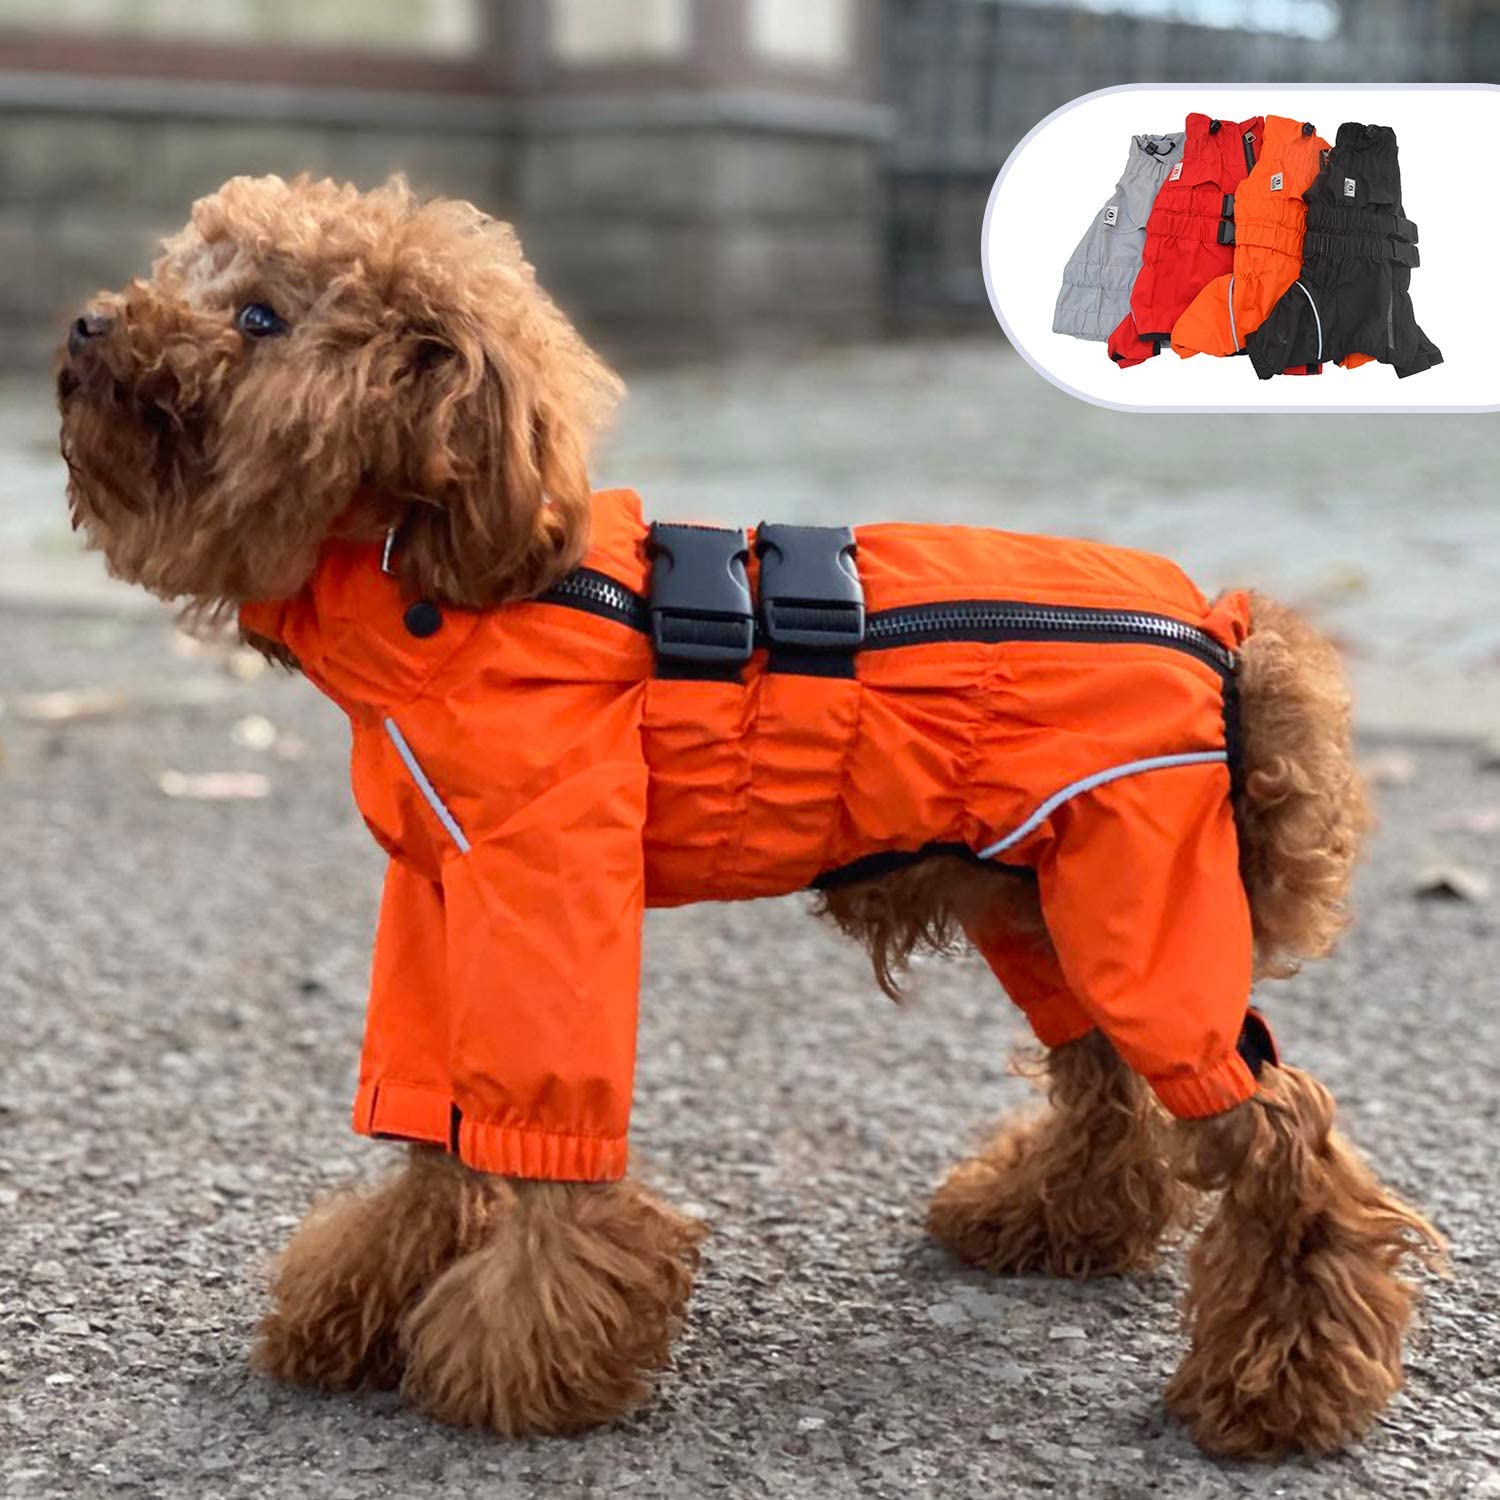 Lovelonglong Dogs Waterproof Jacket, Lightweight Waterproof Jacket Reflective Safety Dog Raincoat Windproof Snow-Proof Dog Vest for Small Medium Large Dogs